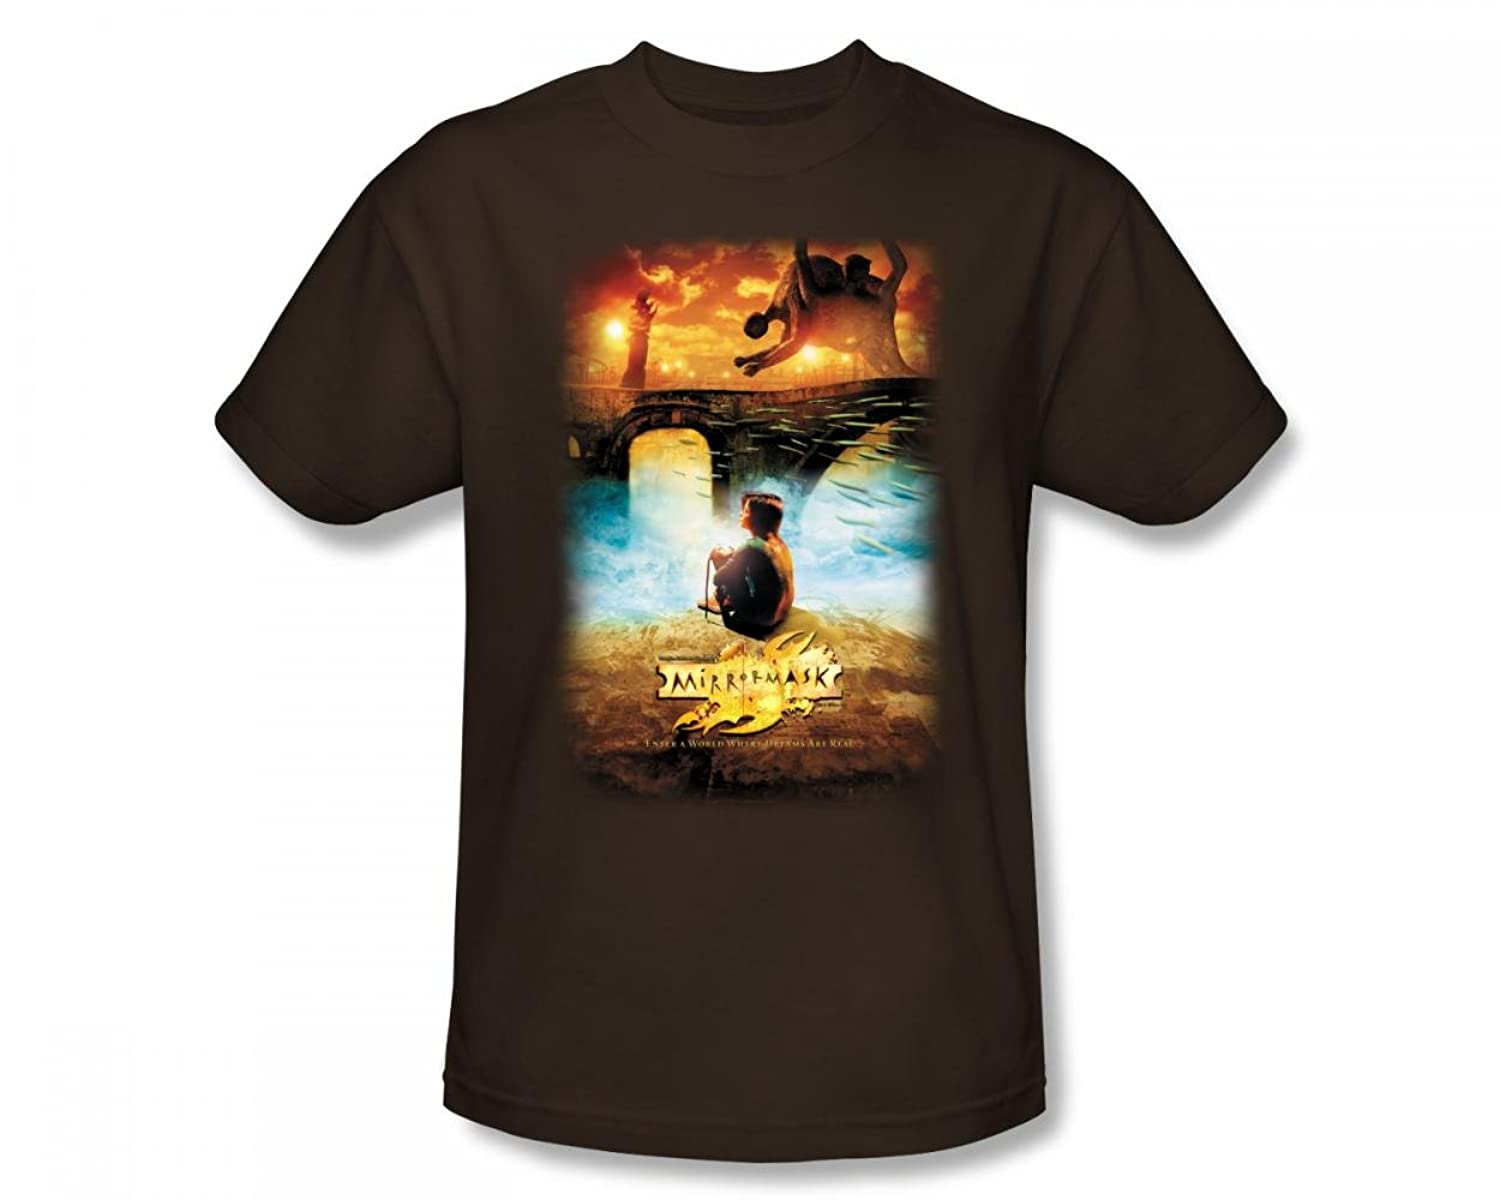 Mirrormask - Movie Poster Adult T-Shirt In Coffee